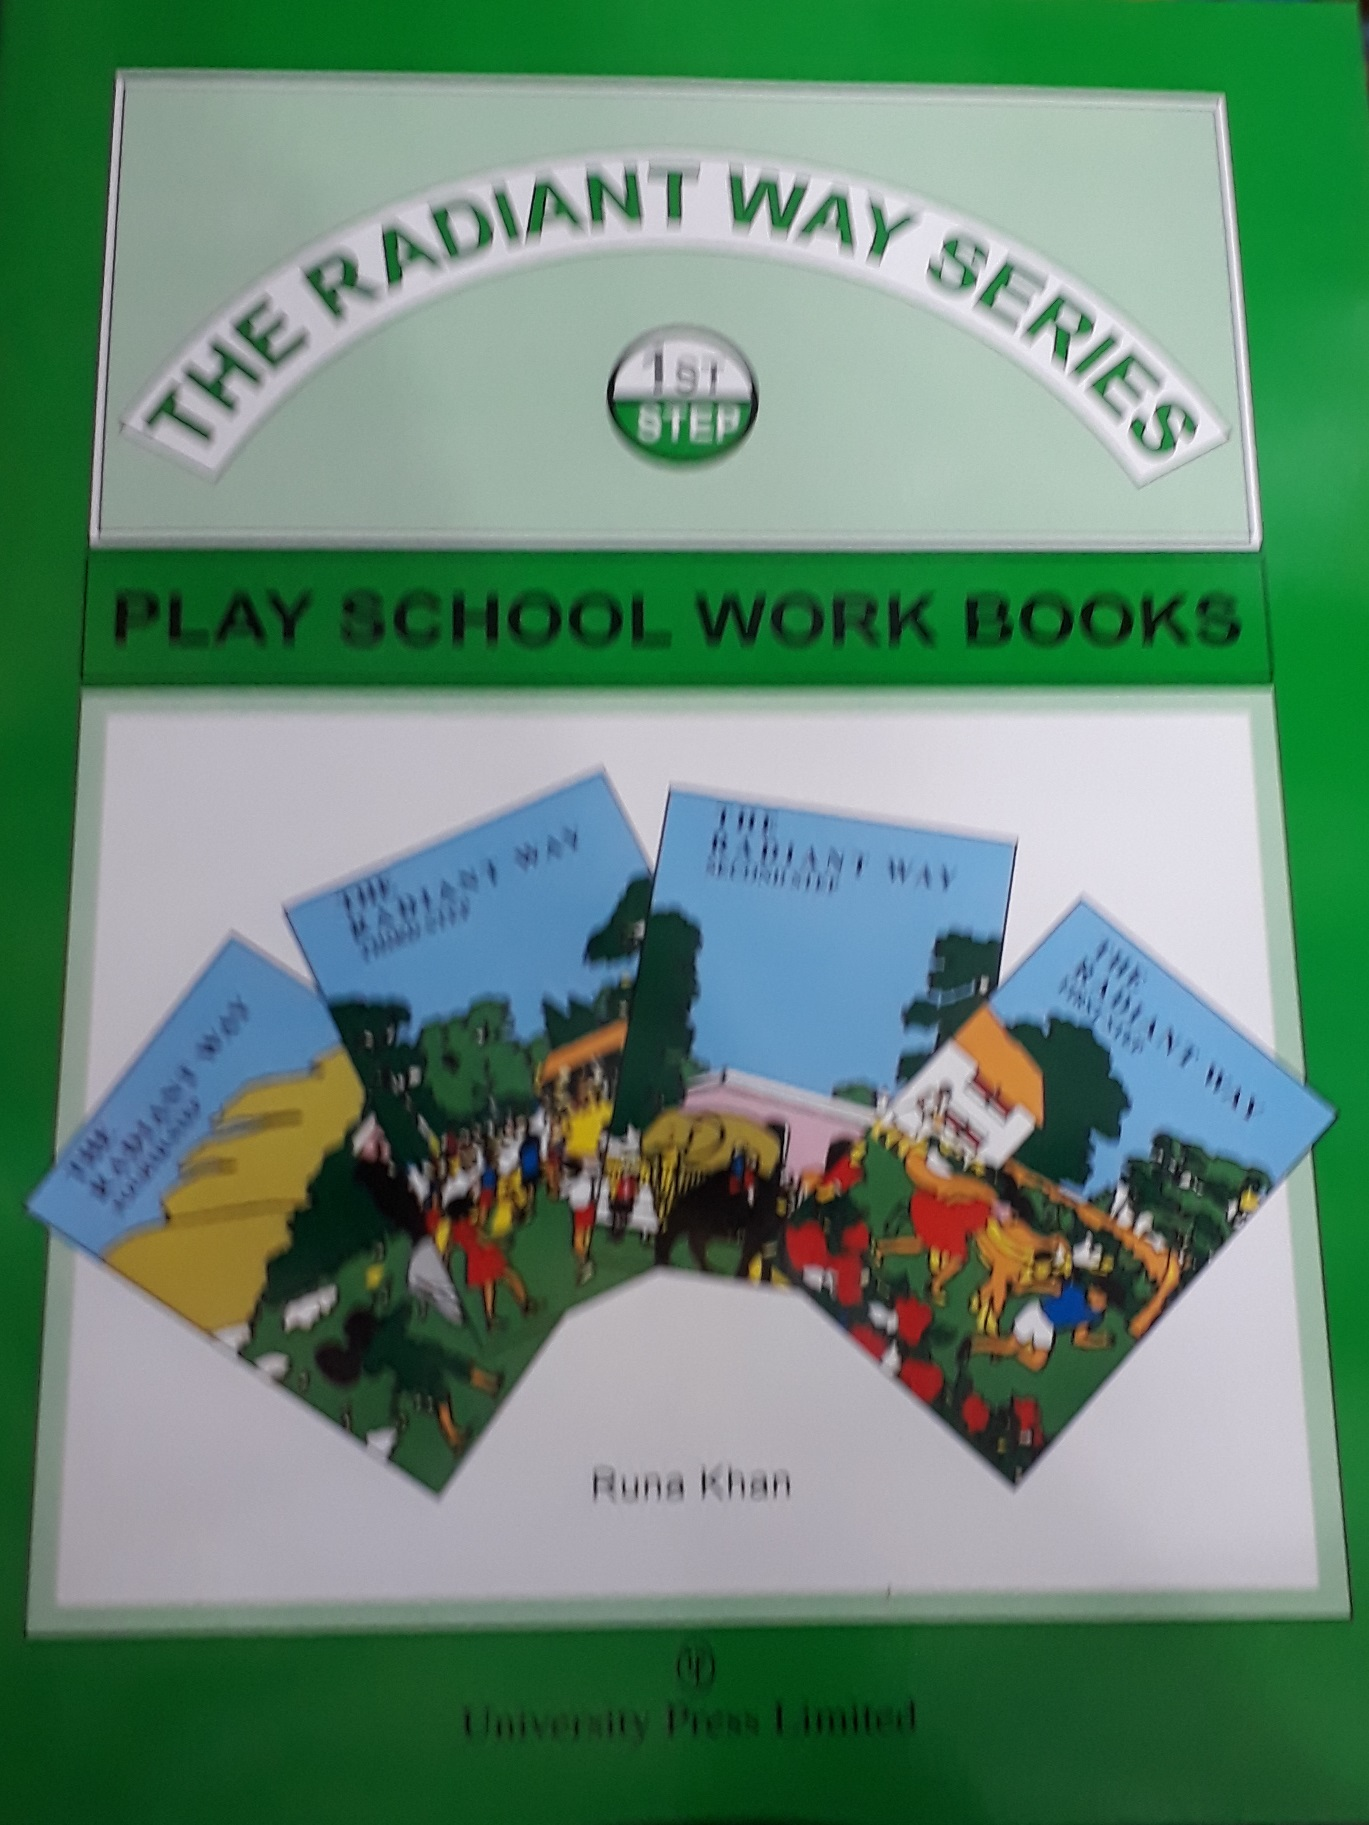 THE RADIANT WAY FIRST STEP – PLAY SCHOOL WORK BOOKS